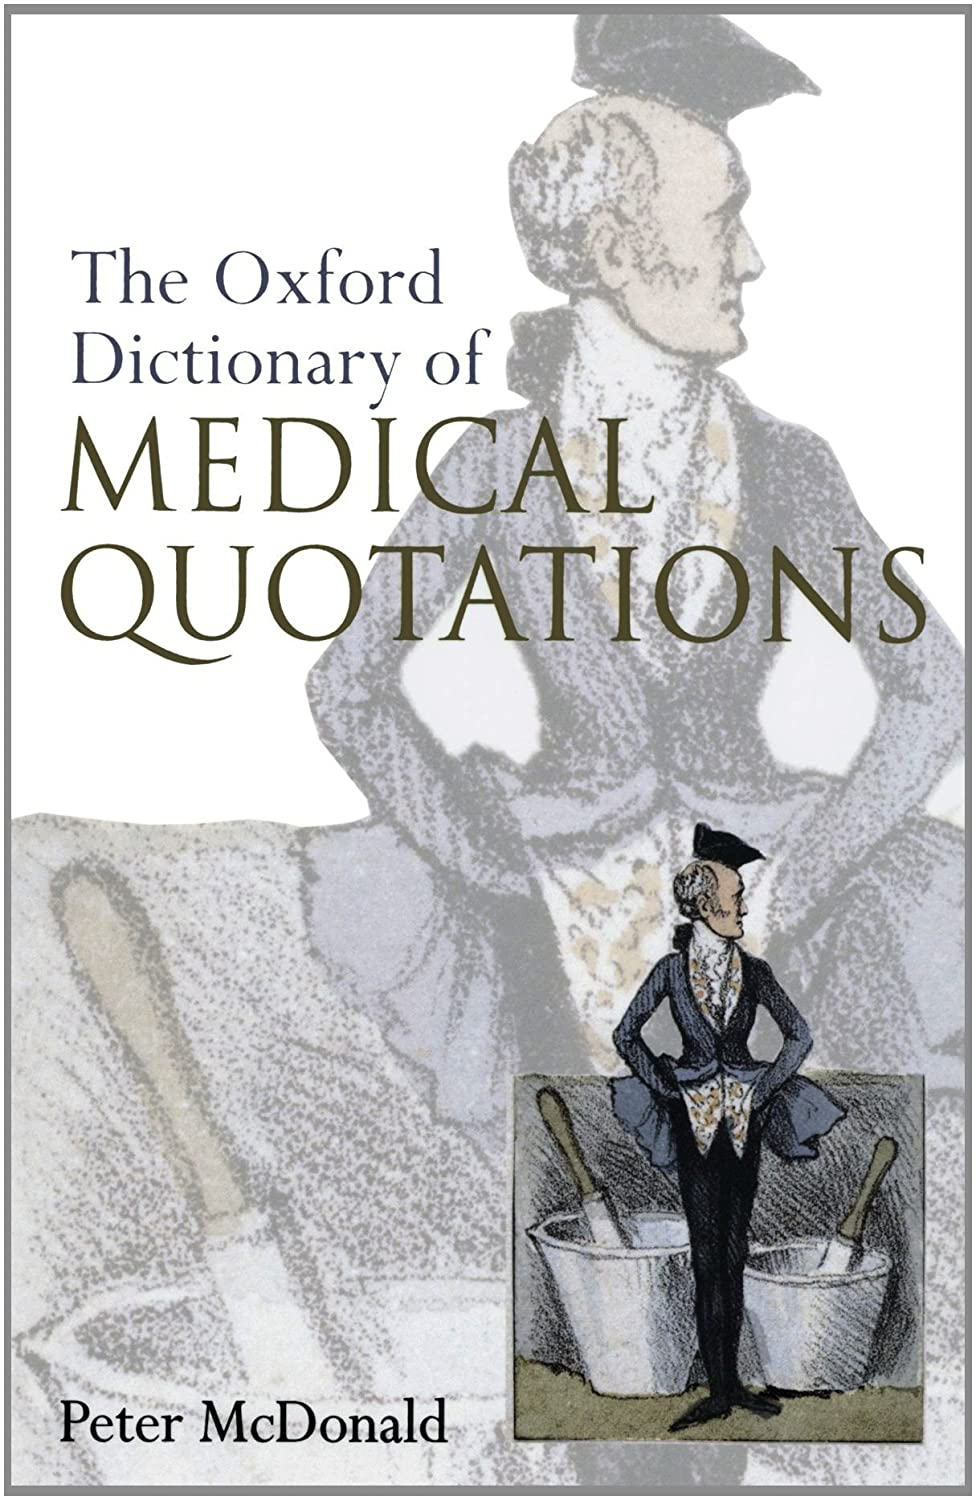 Pathology Outlines - Books for Pathologists > Books by